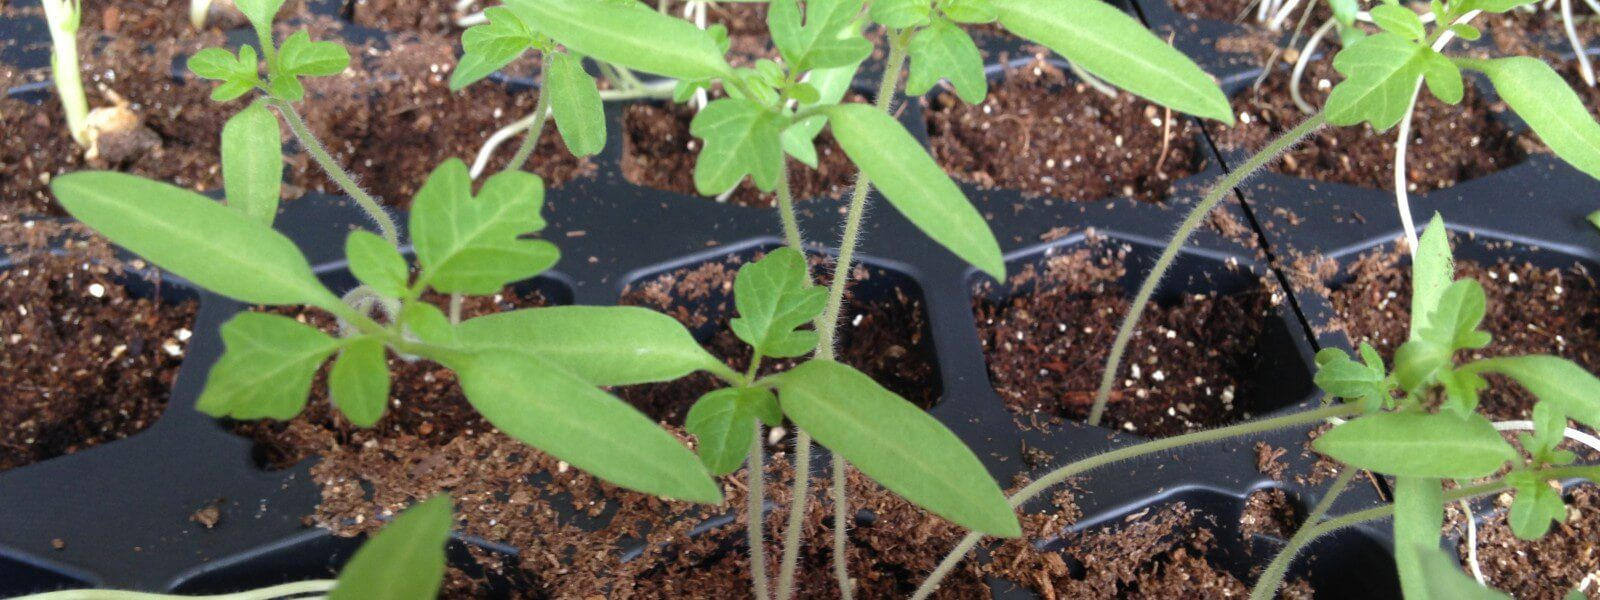 Seedlings in a planting tray.